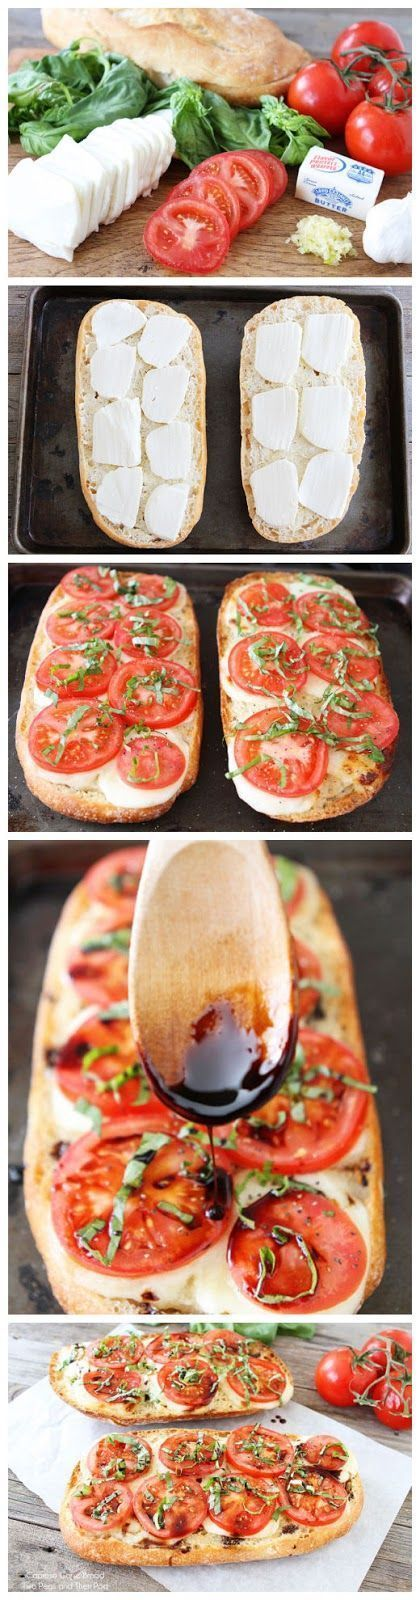 Easy Caprese Garlic Bread. I added prosciutto over the mozzarella and it was amazing! #foods #recipes